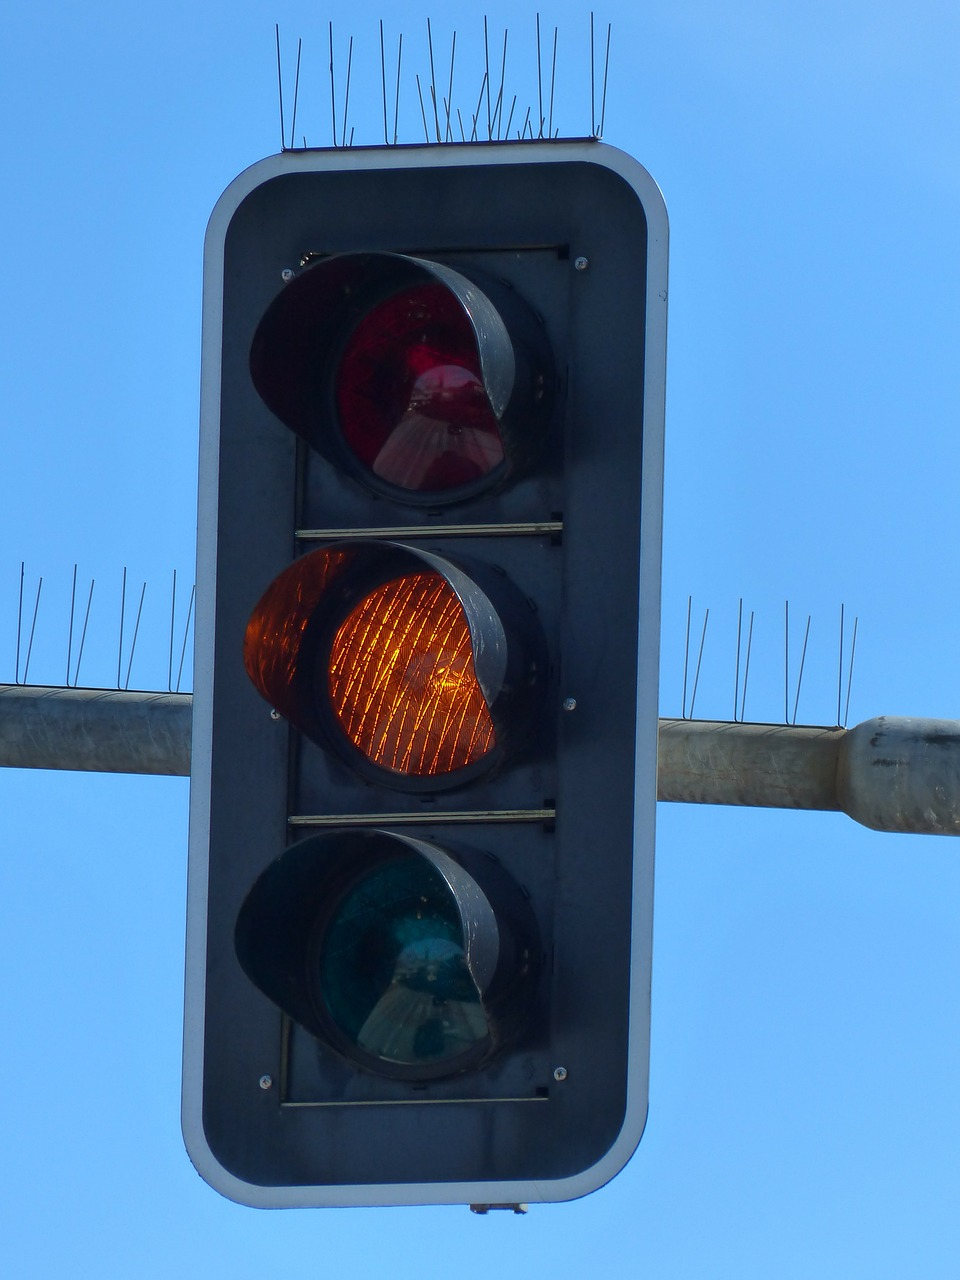 traffic lights beacon rules of the road free photo